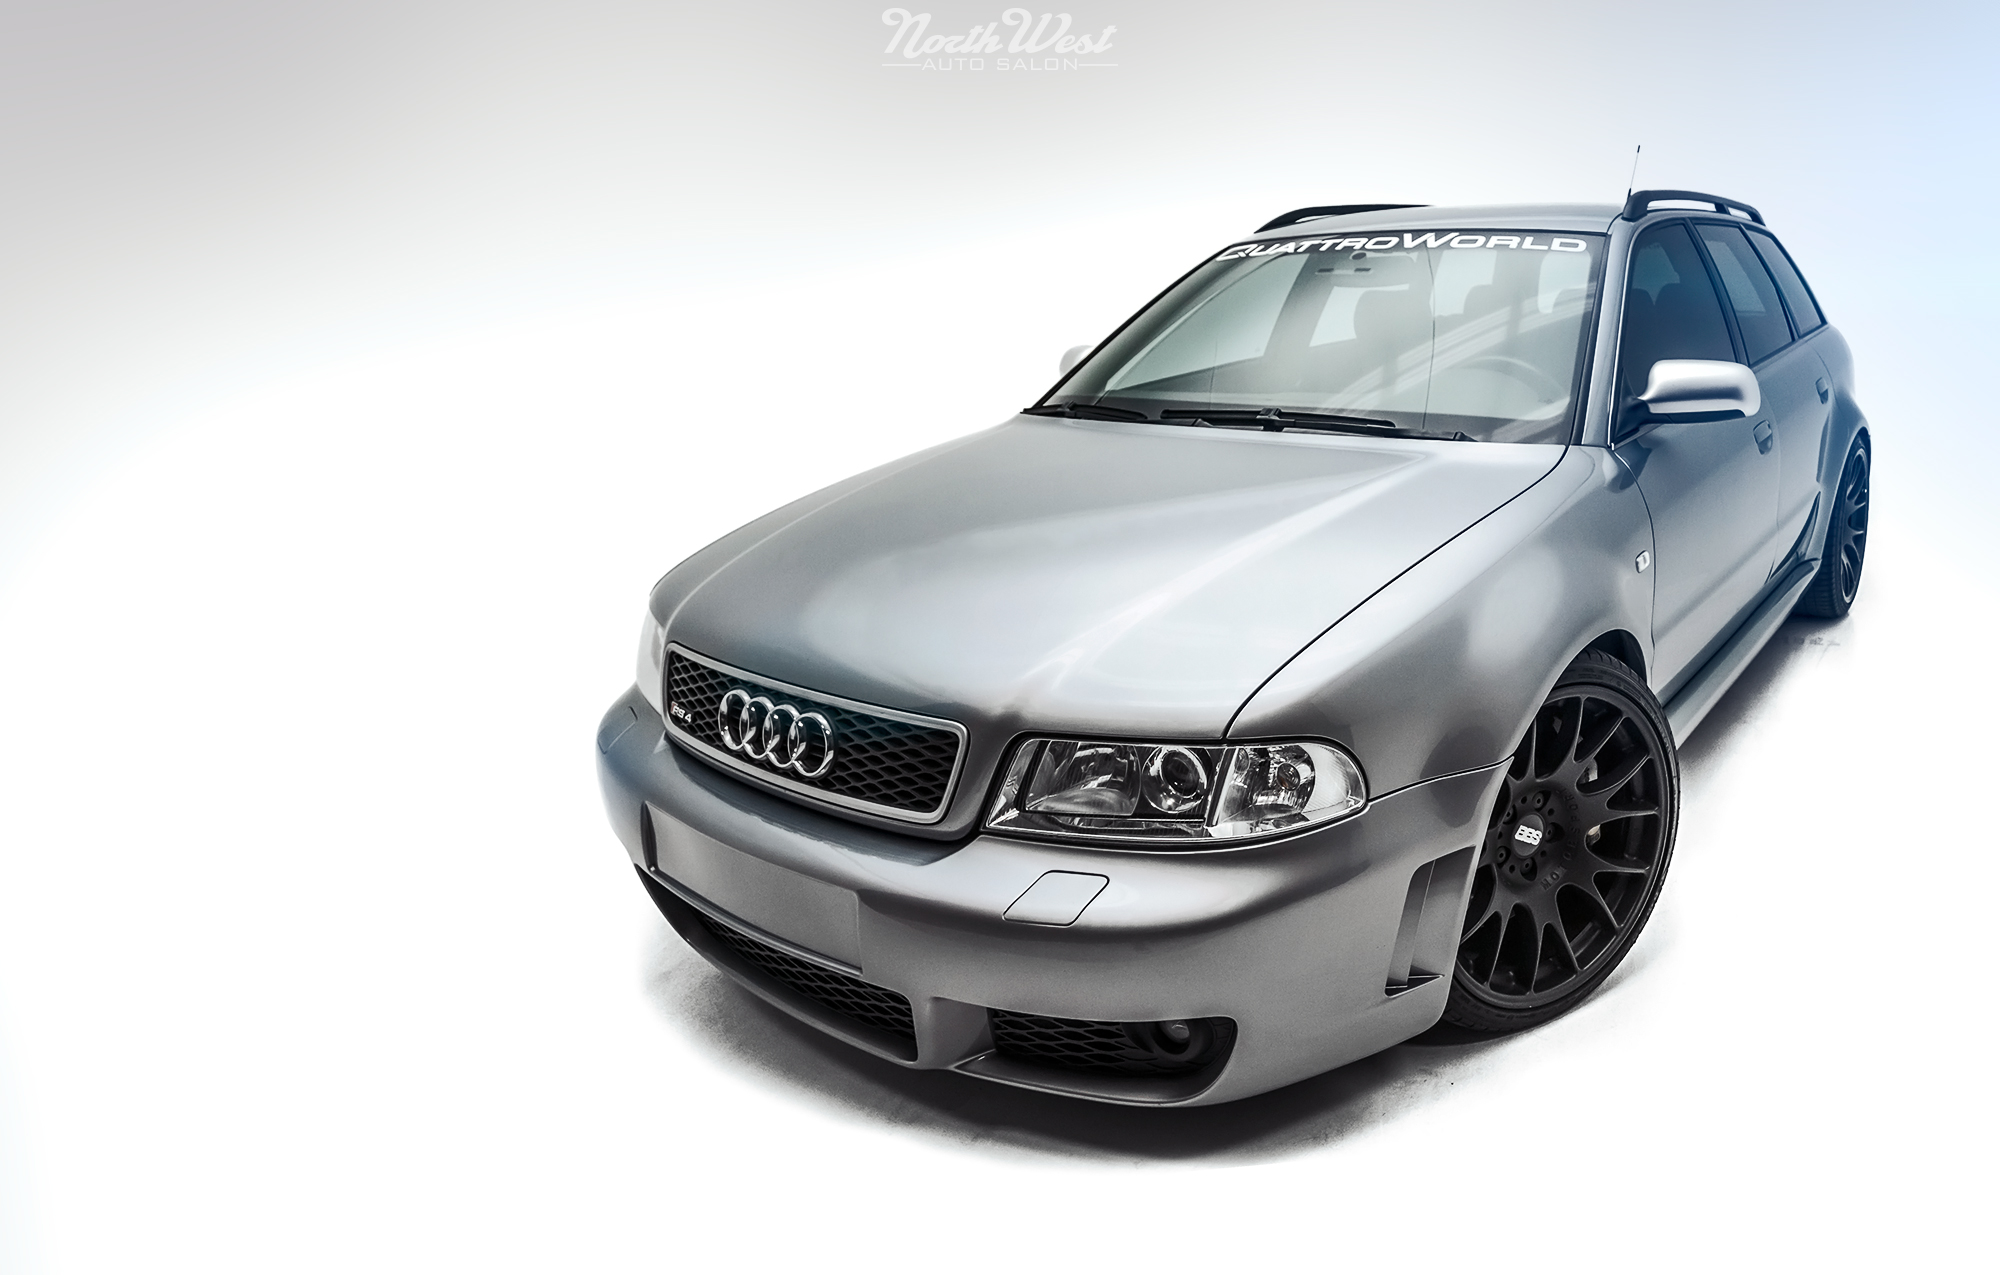 Audi RS4 detail and photoshoot NWAS QuattroWorld